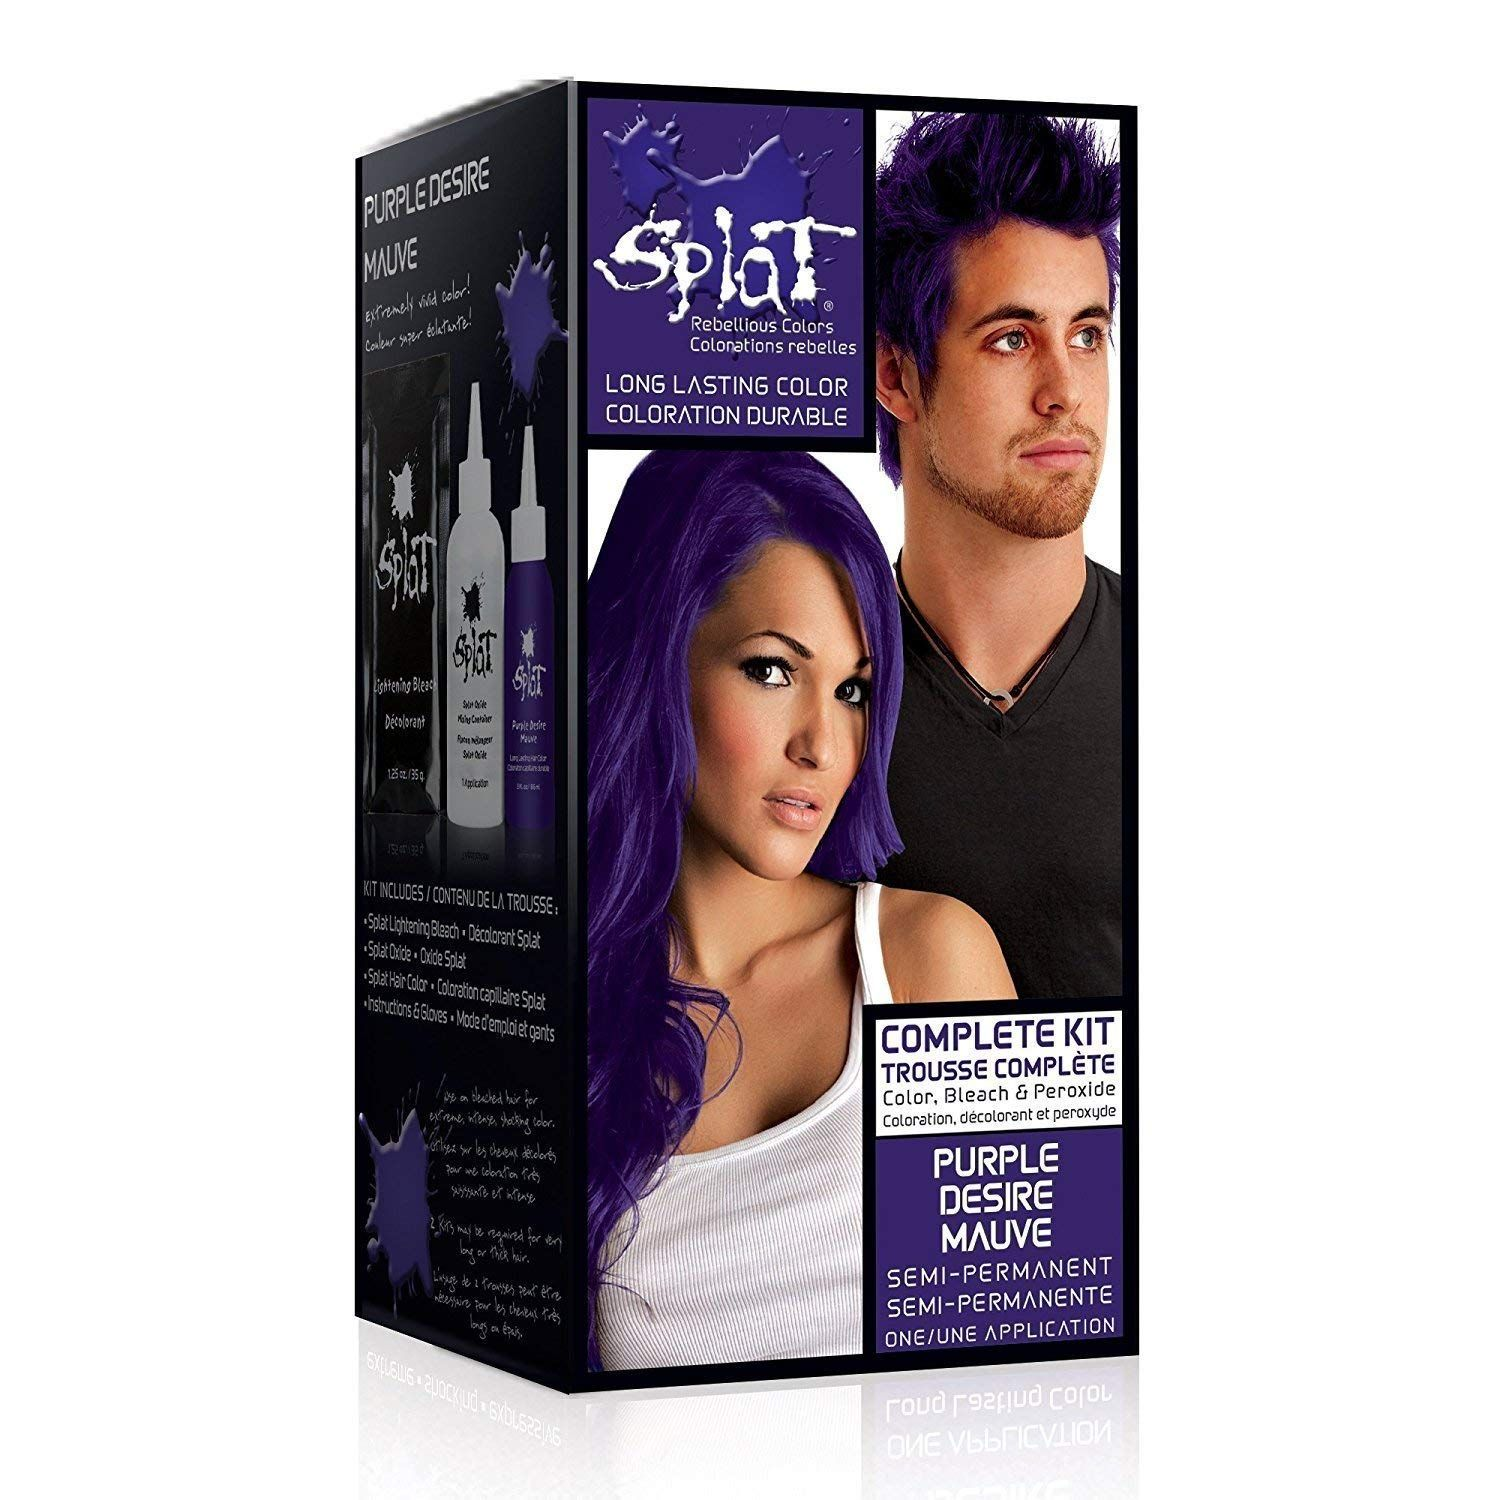 Splat Rebellious Colors Hair Coloring Complete Kit Purple Desire Be Sure To Check Out This Awesome Pr Splat Hair Dye Permanent Hair Dye Permanent Hair Color